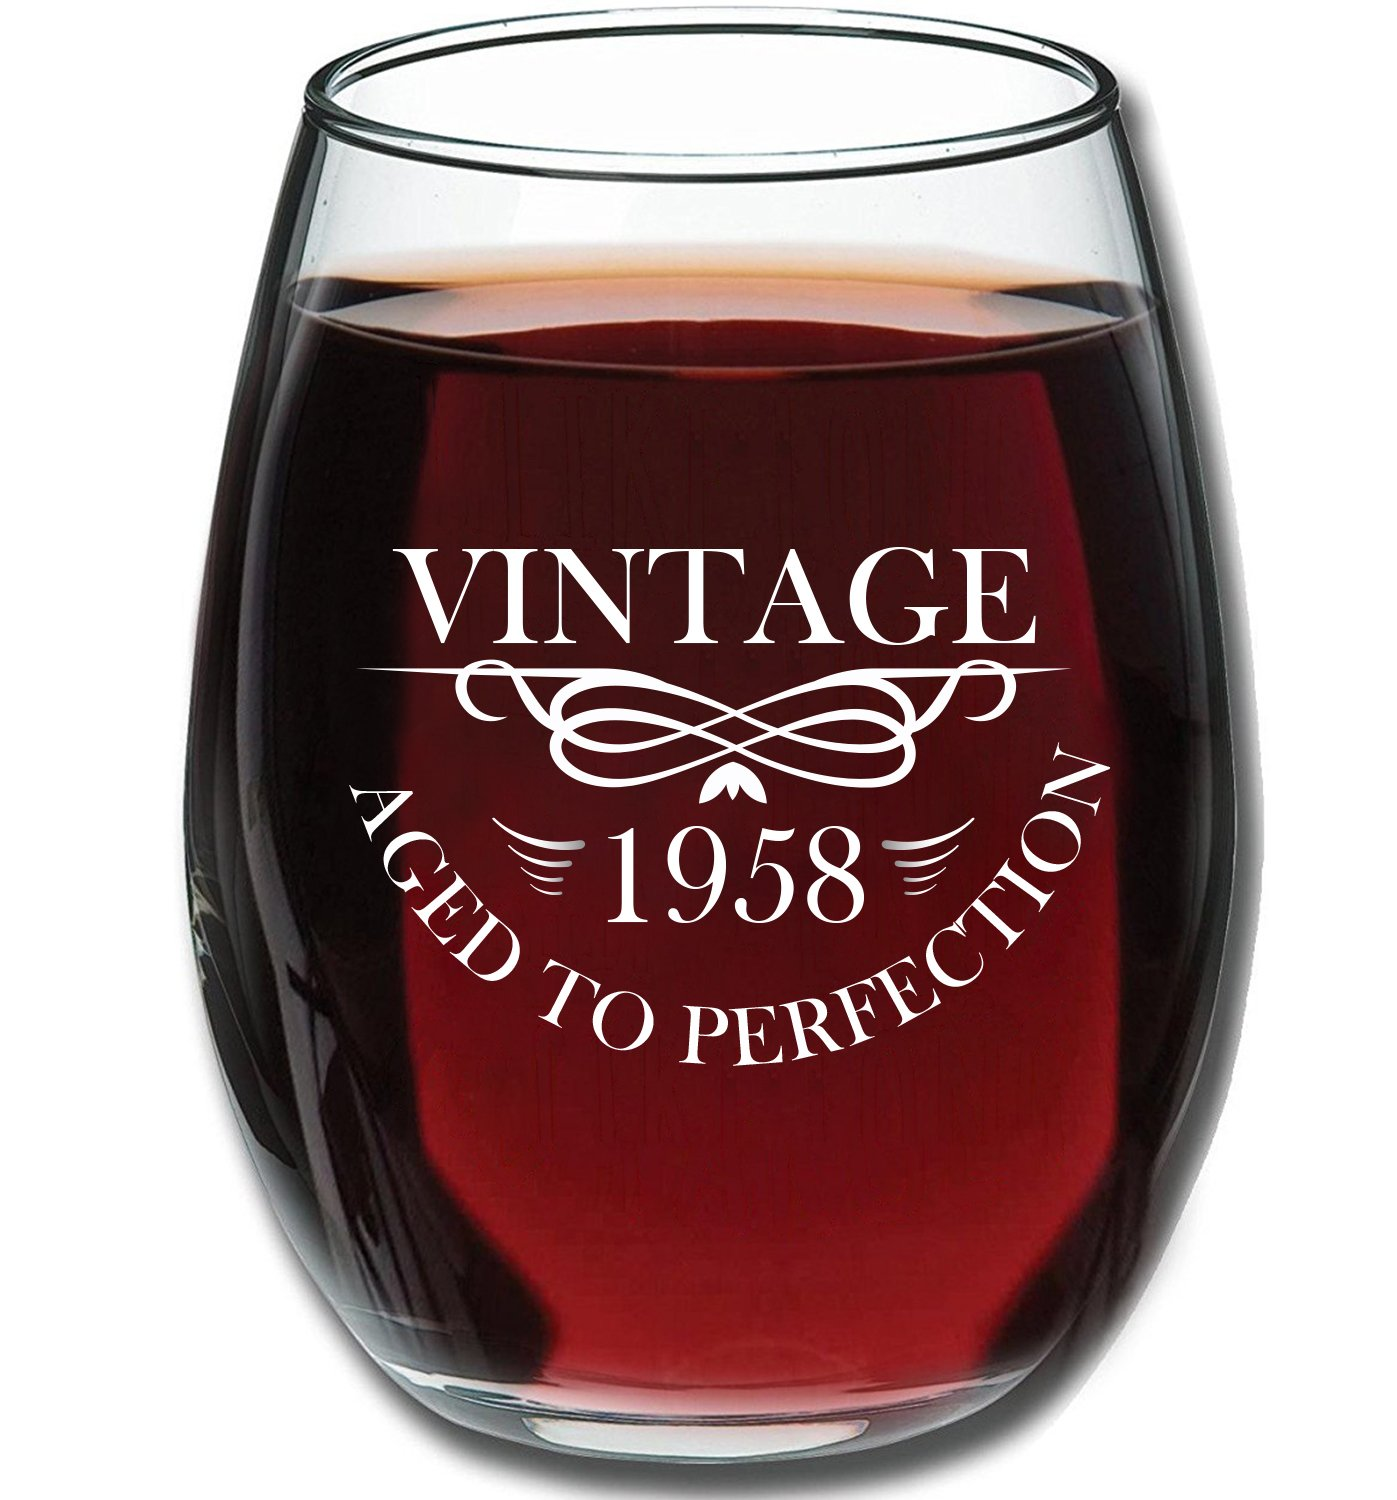 1988 30th Birthday 15oz Stemless Wine Glass for Women and Men - Vintage Aged To Perfection - 30th Wedding Anniversary Gift Idea for Him, Her, Parents - 30 Year Old Presents for Mom, Dad, Husband, Wife